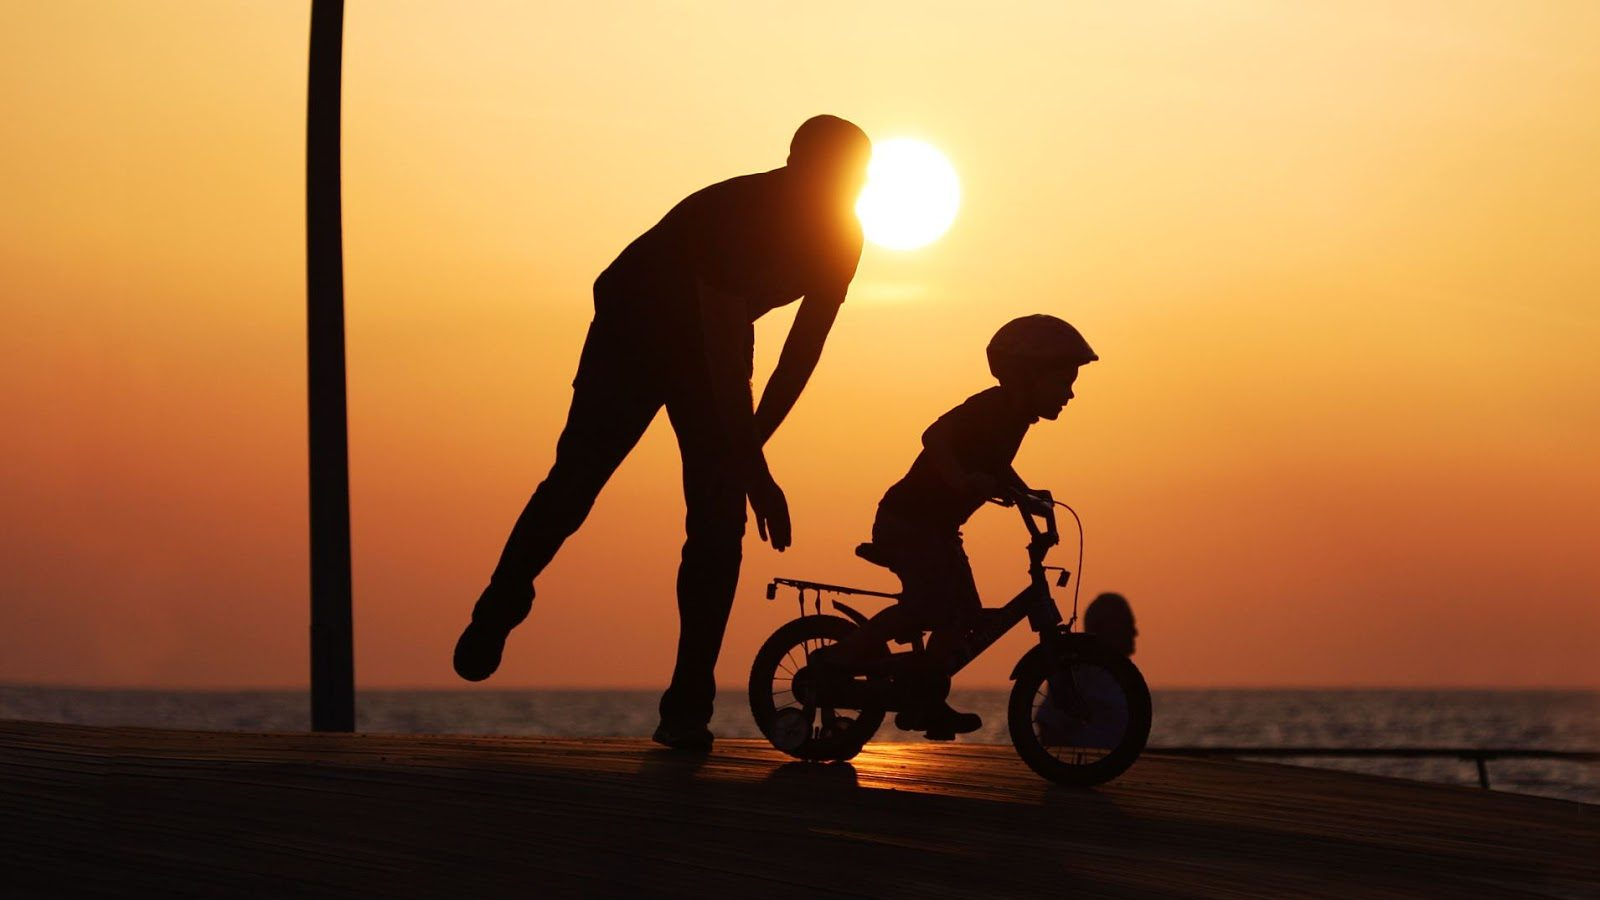 Dad, son, bike